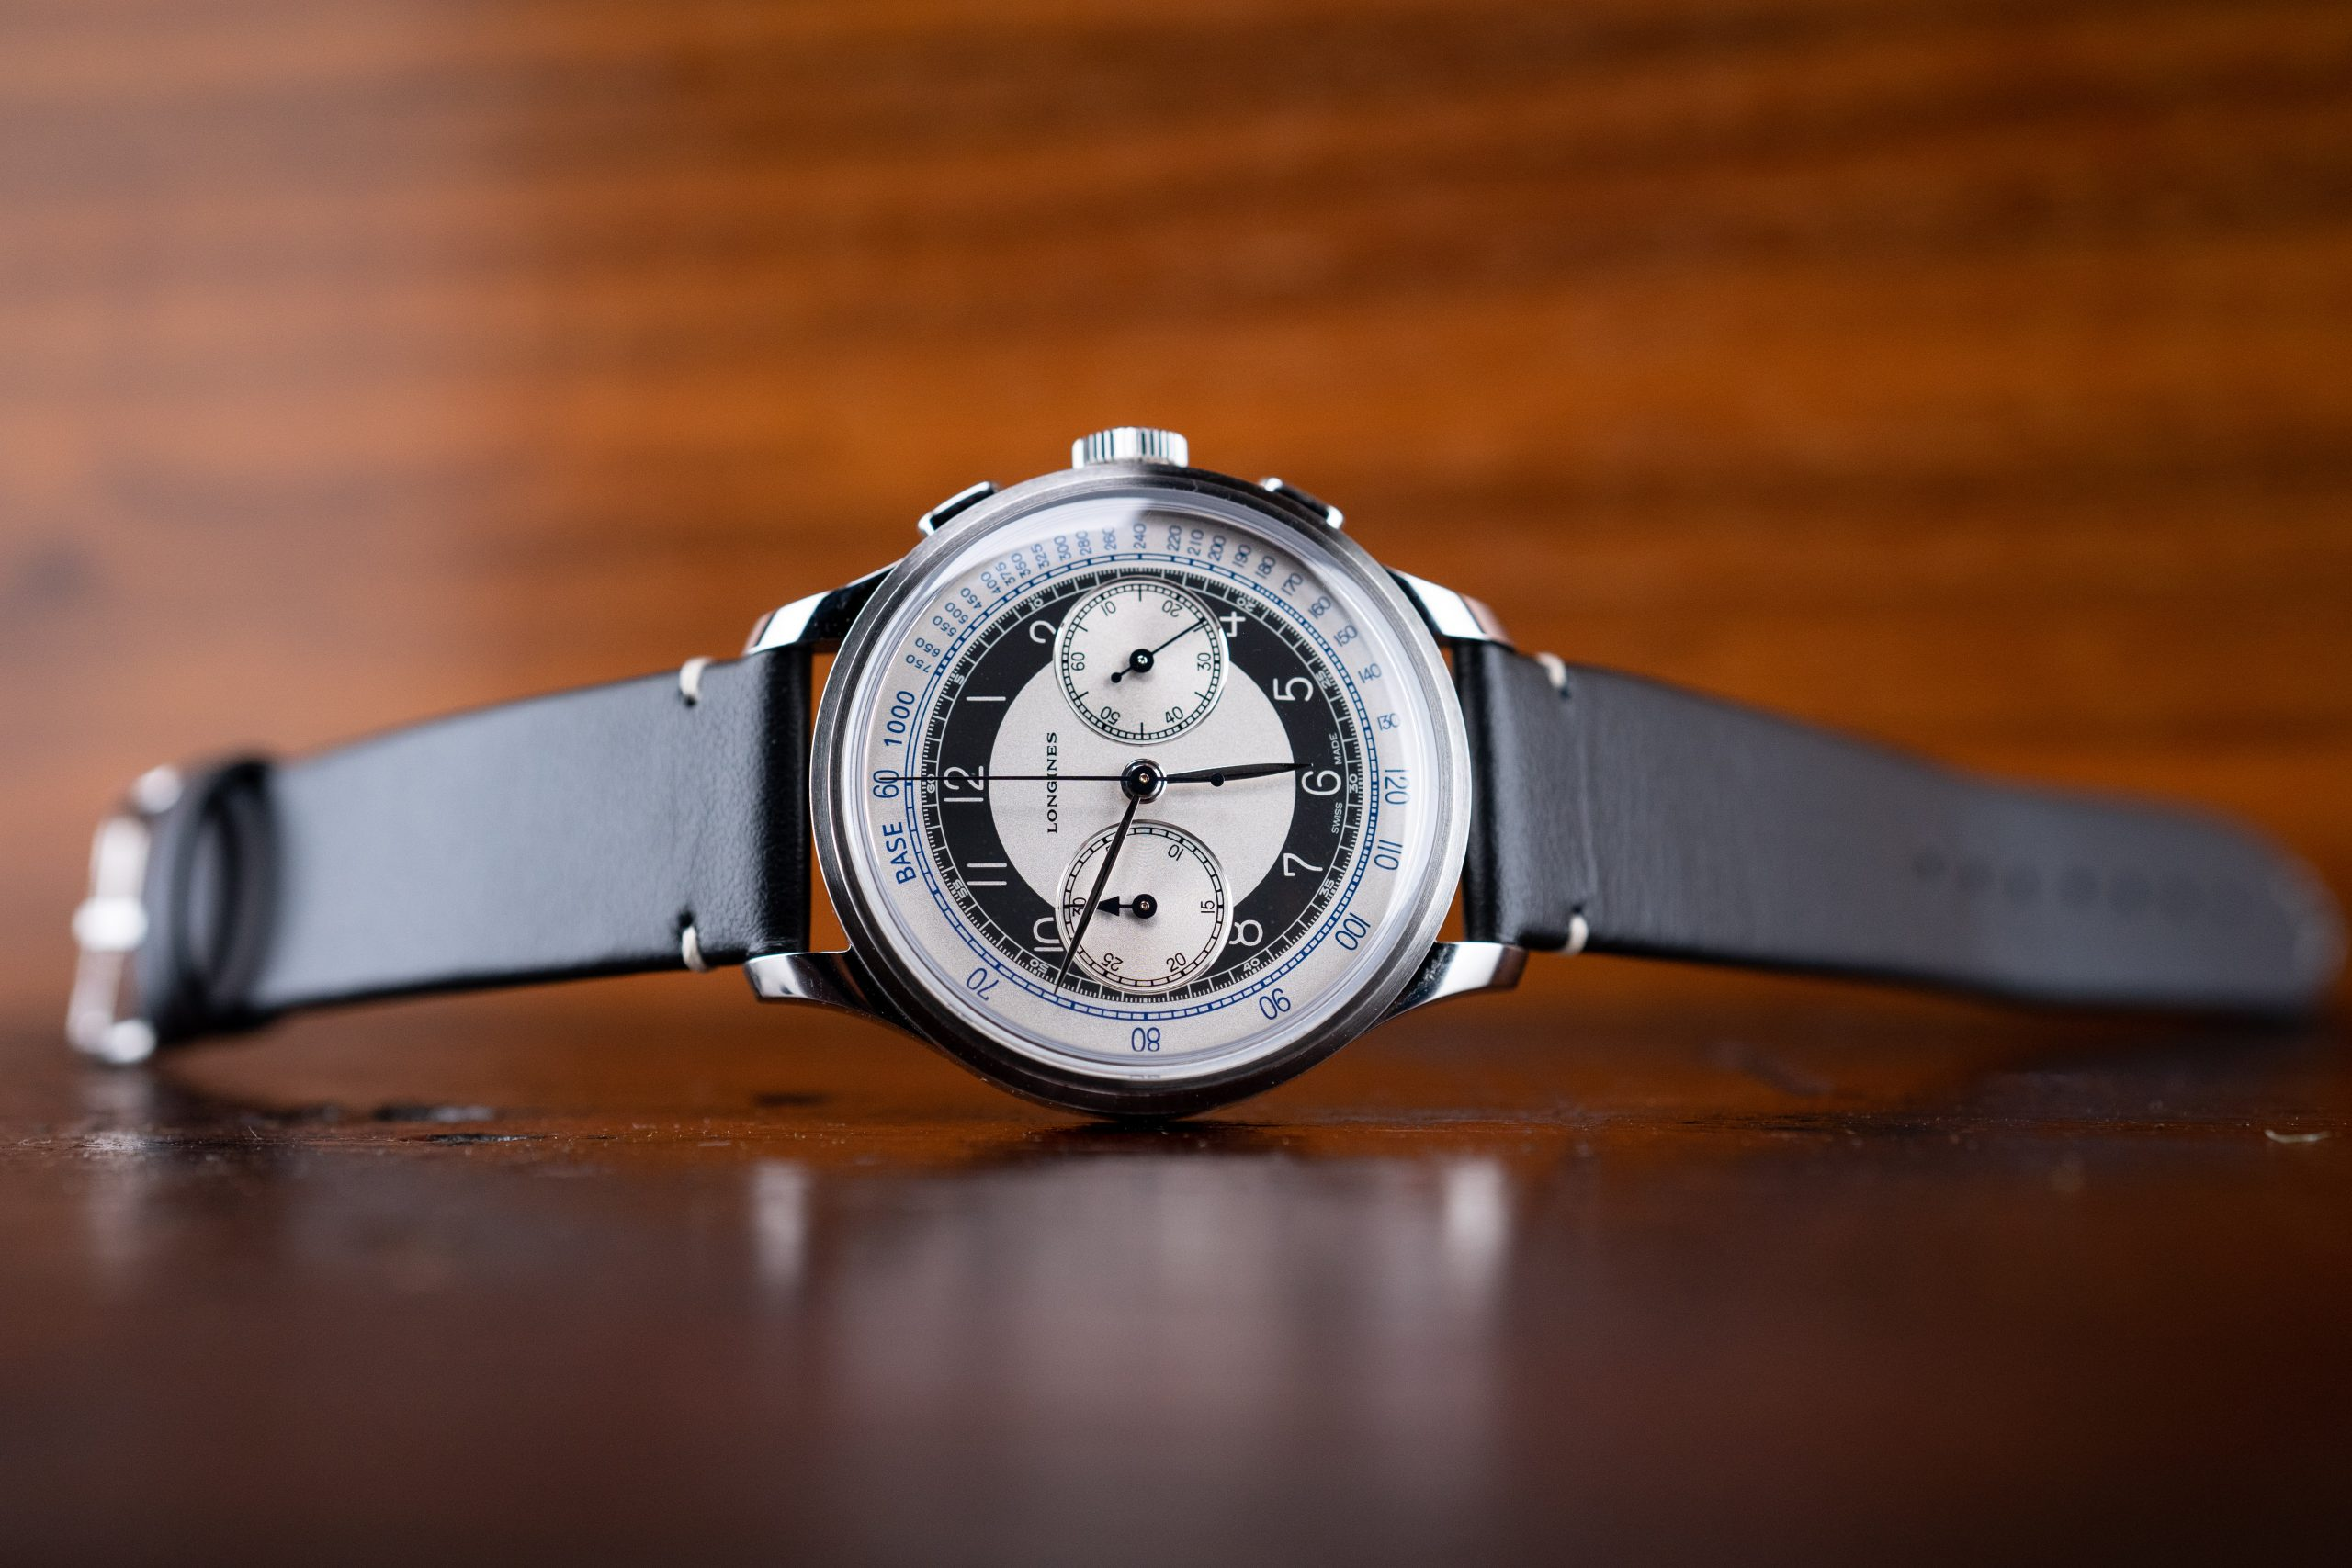 Hands-On Review – Longines Heritage Classic Chronograph